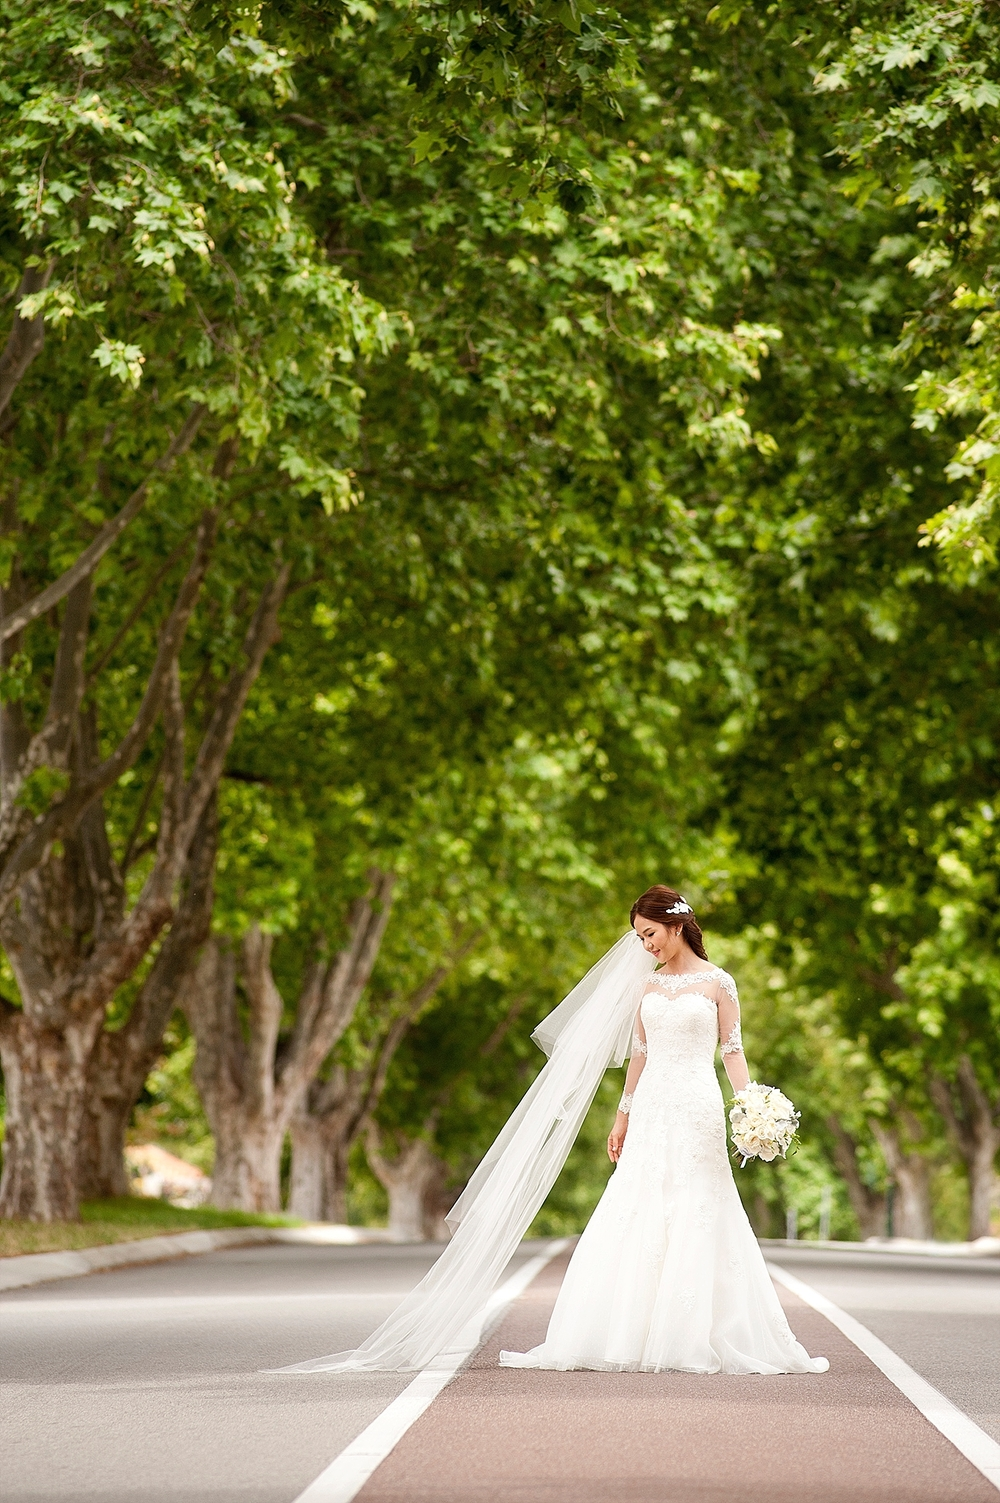 wedding photos in applecross london plane trees across road